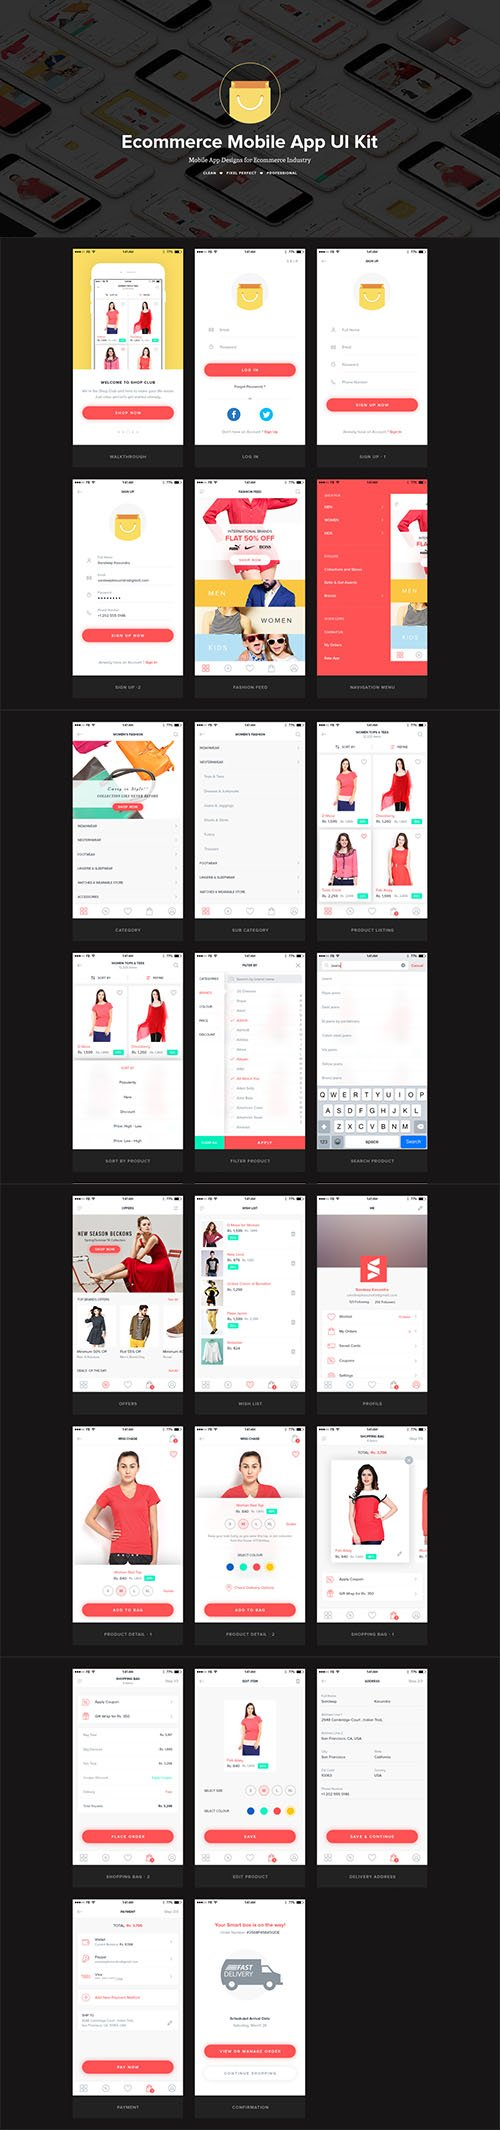 Ecommerce Mobile UI Kit - Professional clean mobile UI Kit